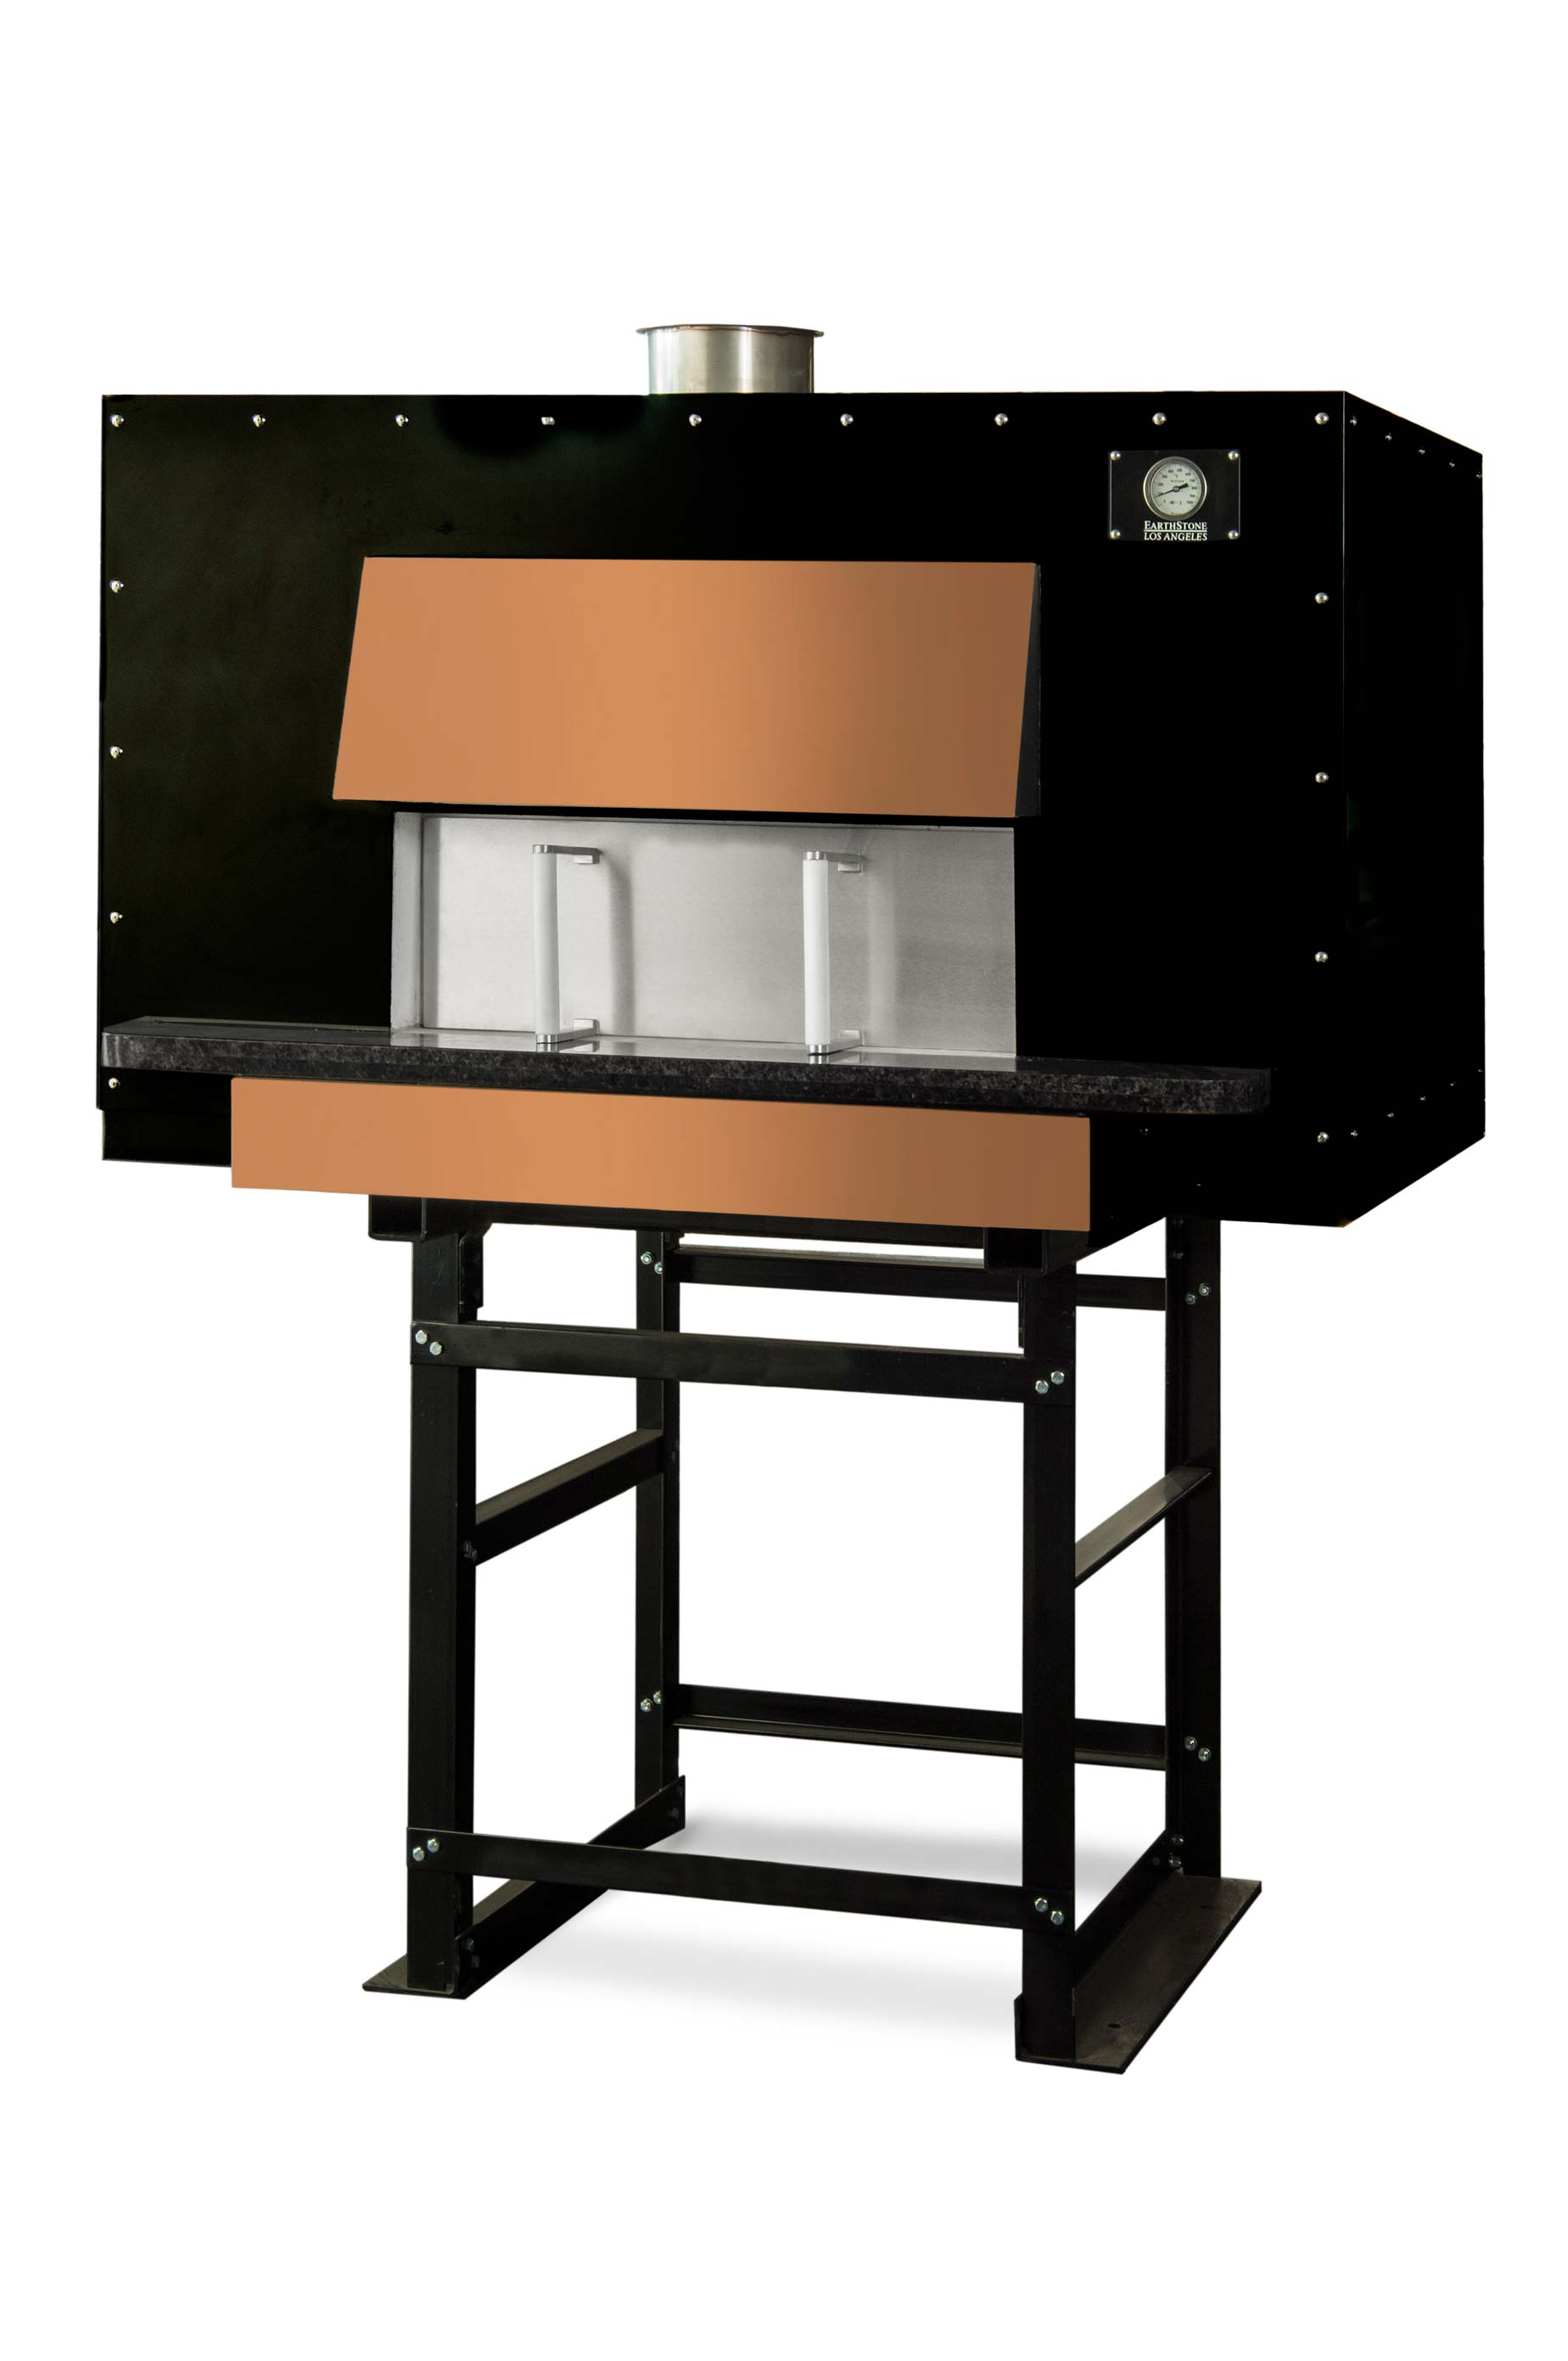 Model 90-Due-PAGW - EarthStone Ovens - Wood & Gas Fire Ovens